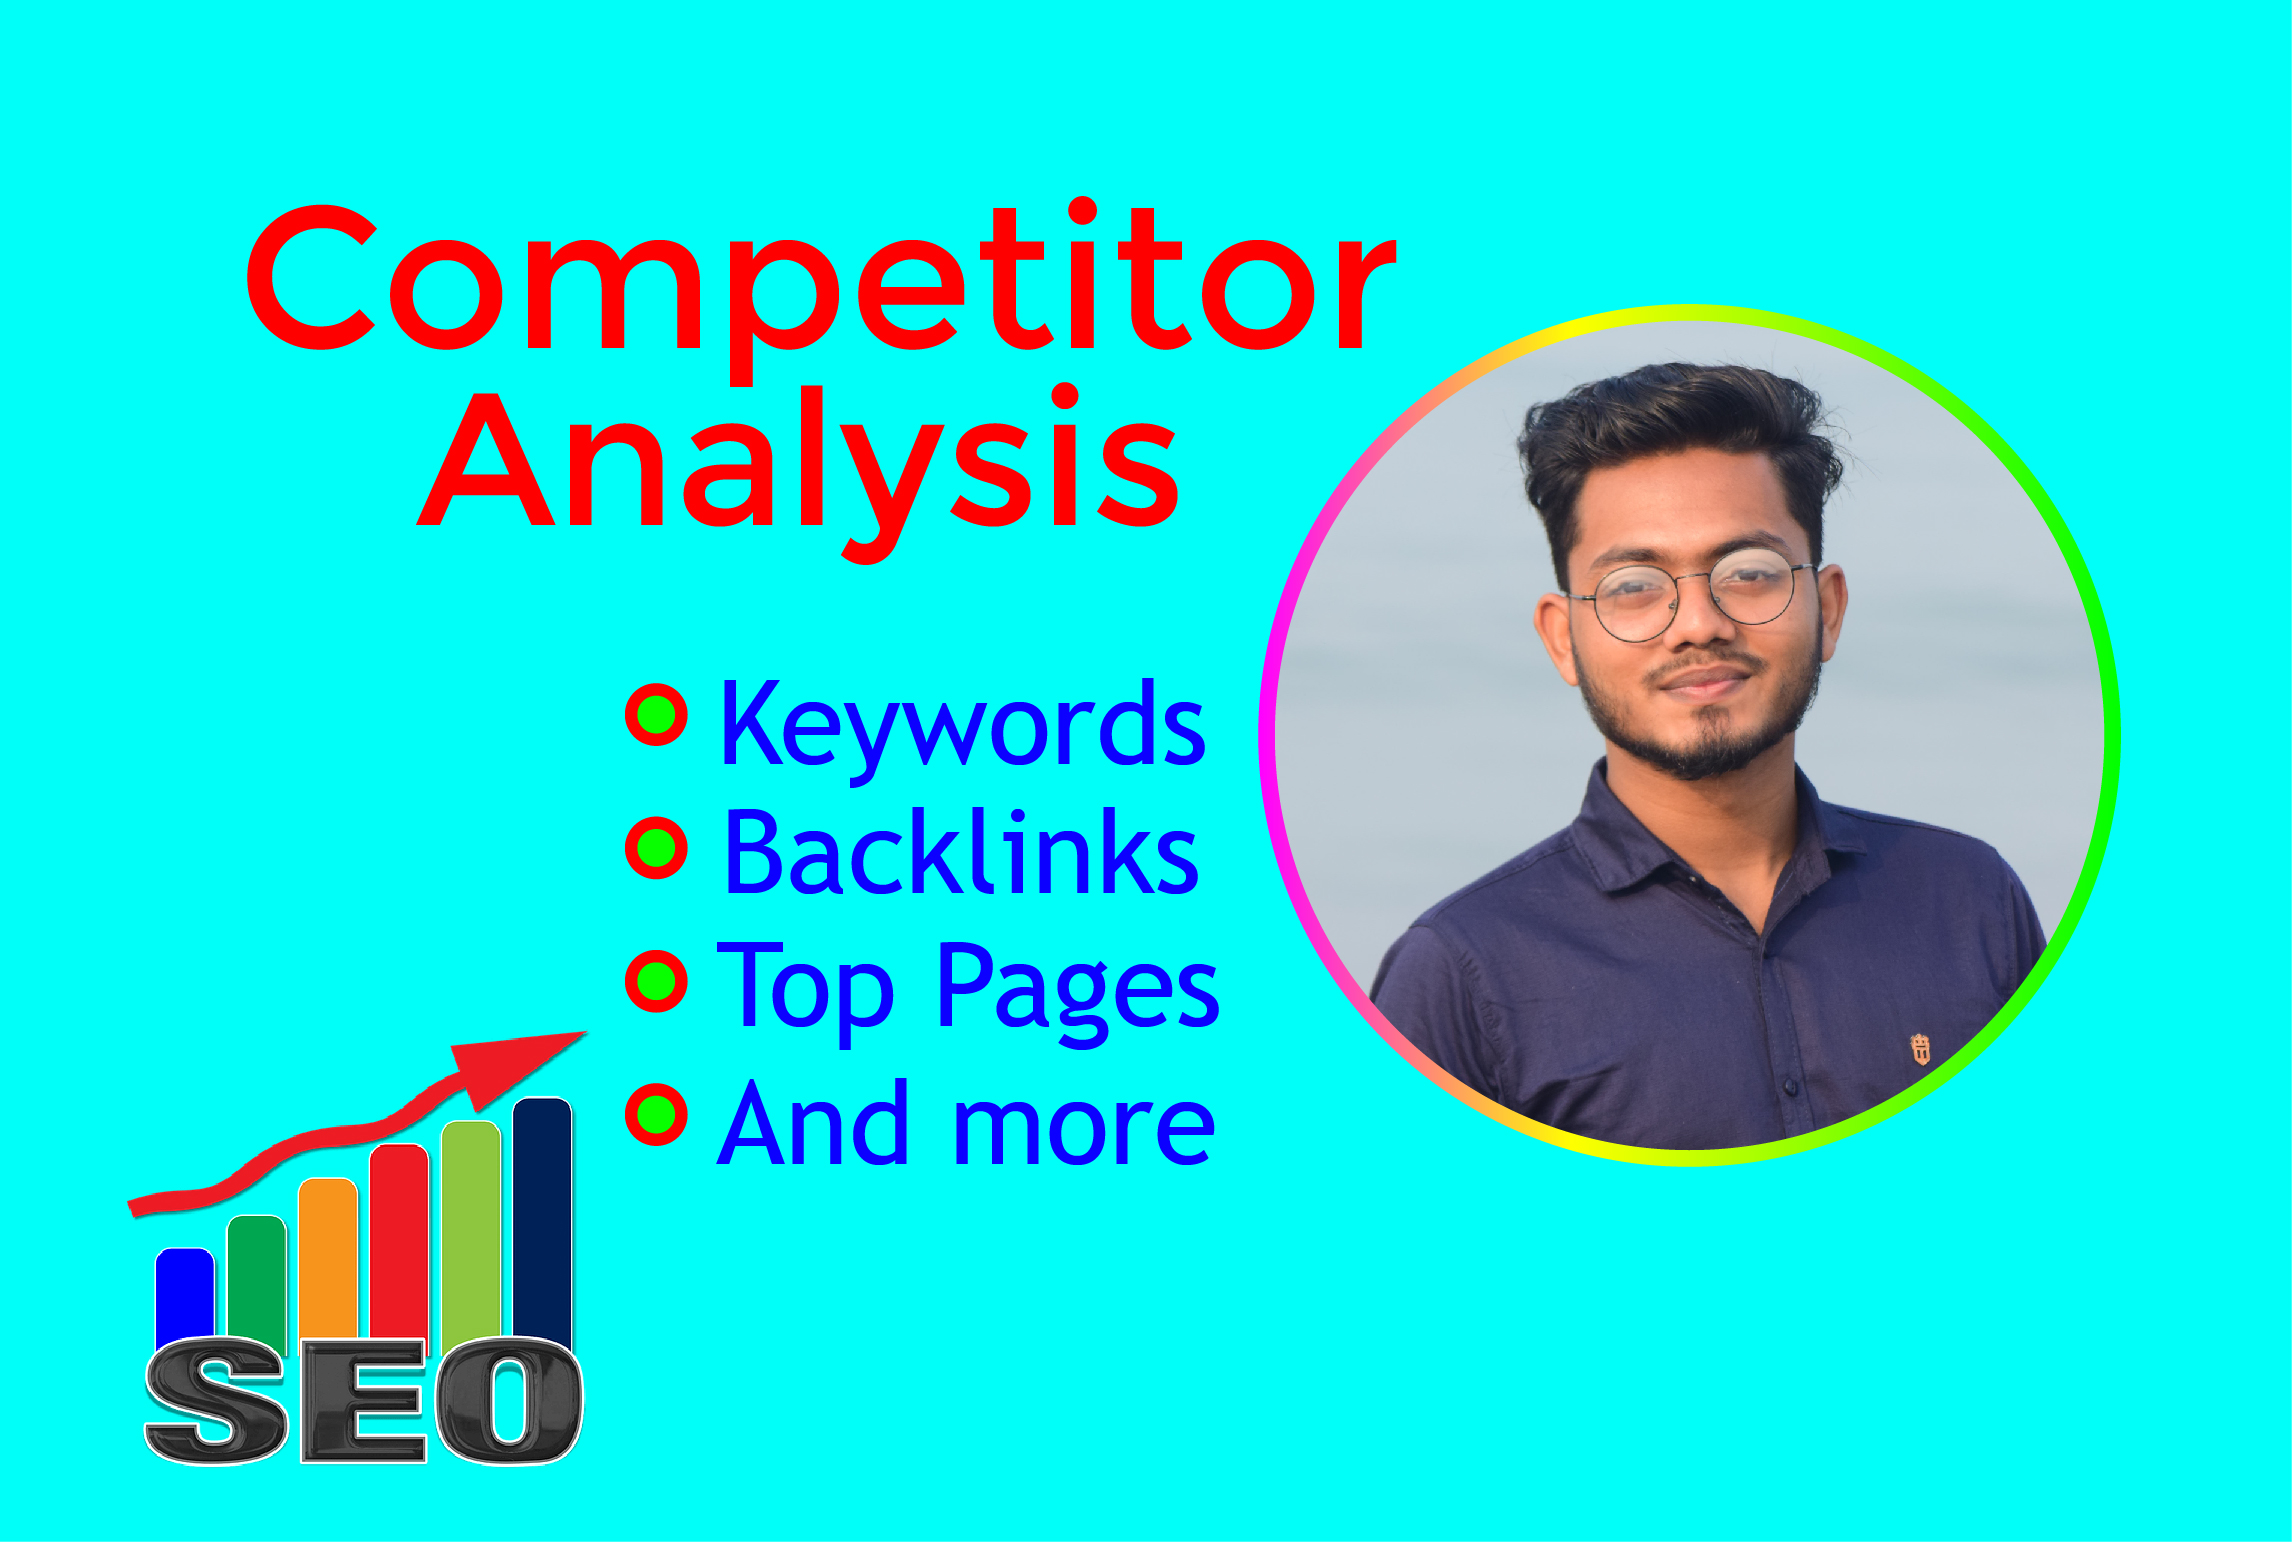 I will provide your competitors complete analysis report